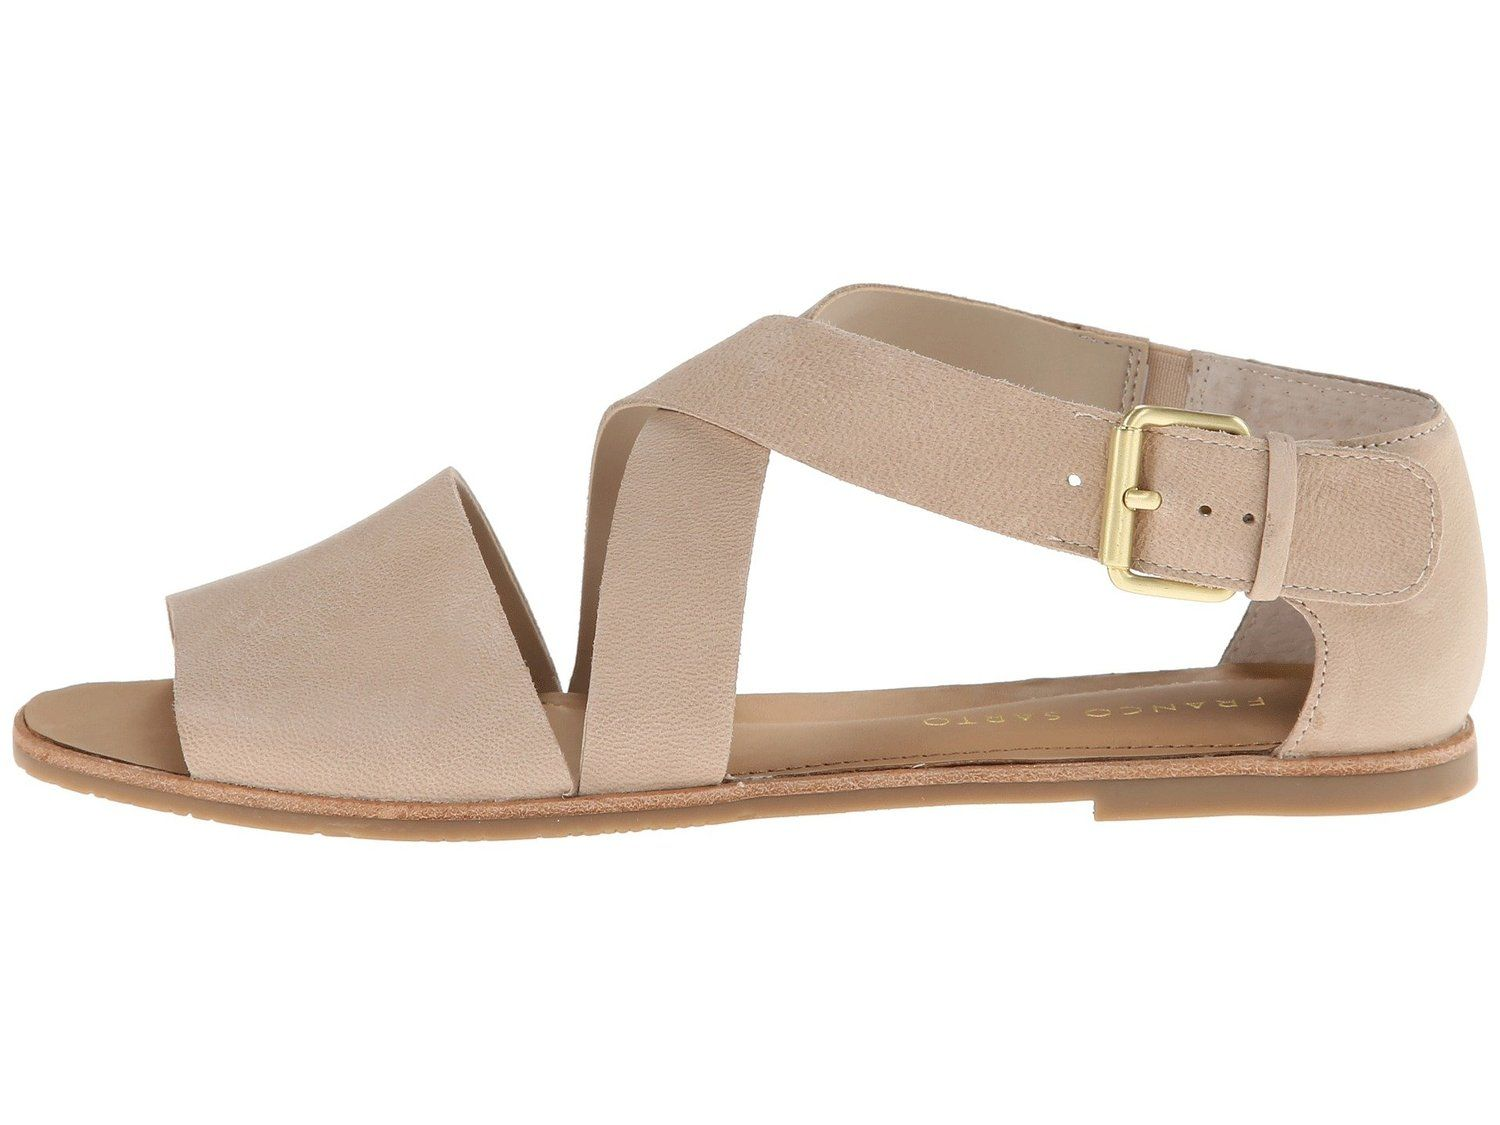 Amazon.com: Franco Sarto Women's Vicker Espadrille Sandal: Shoes